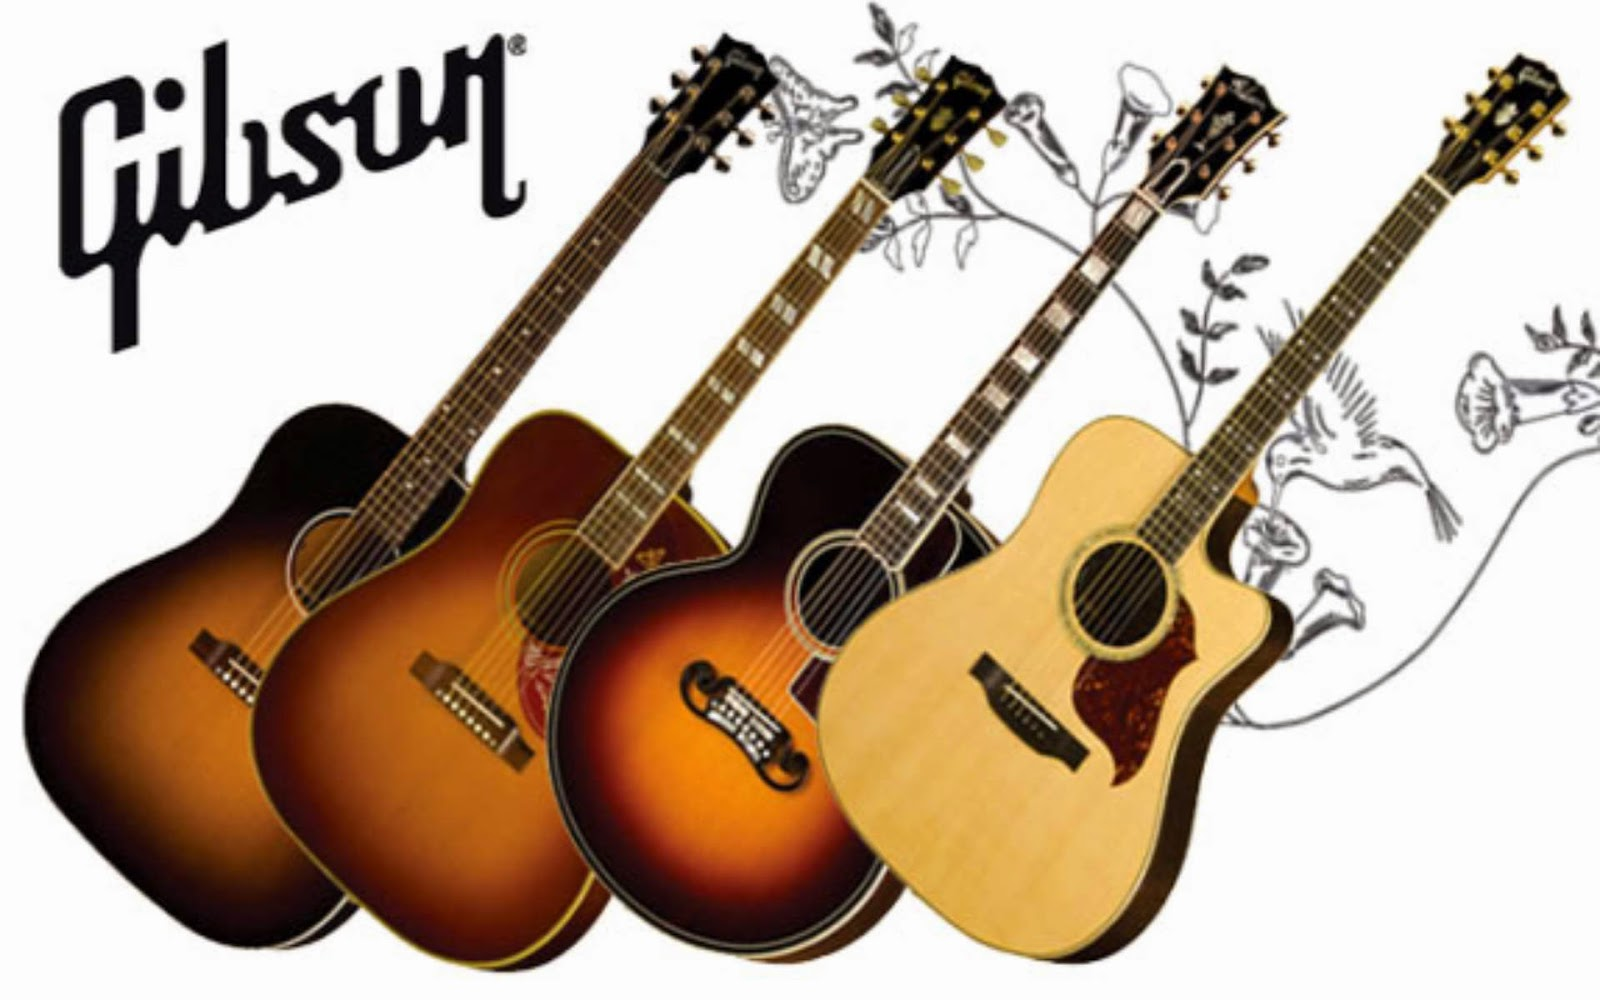 GibSon AcouStic GuiTar WalLpaPer Hd 1920x1200 Download Wallpaper For 1600x1000